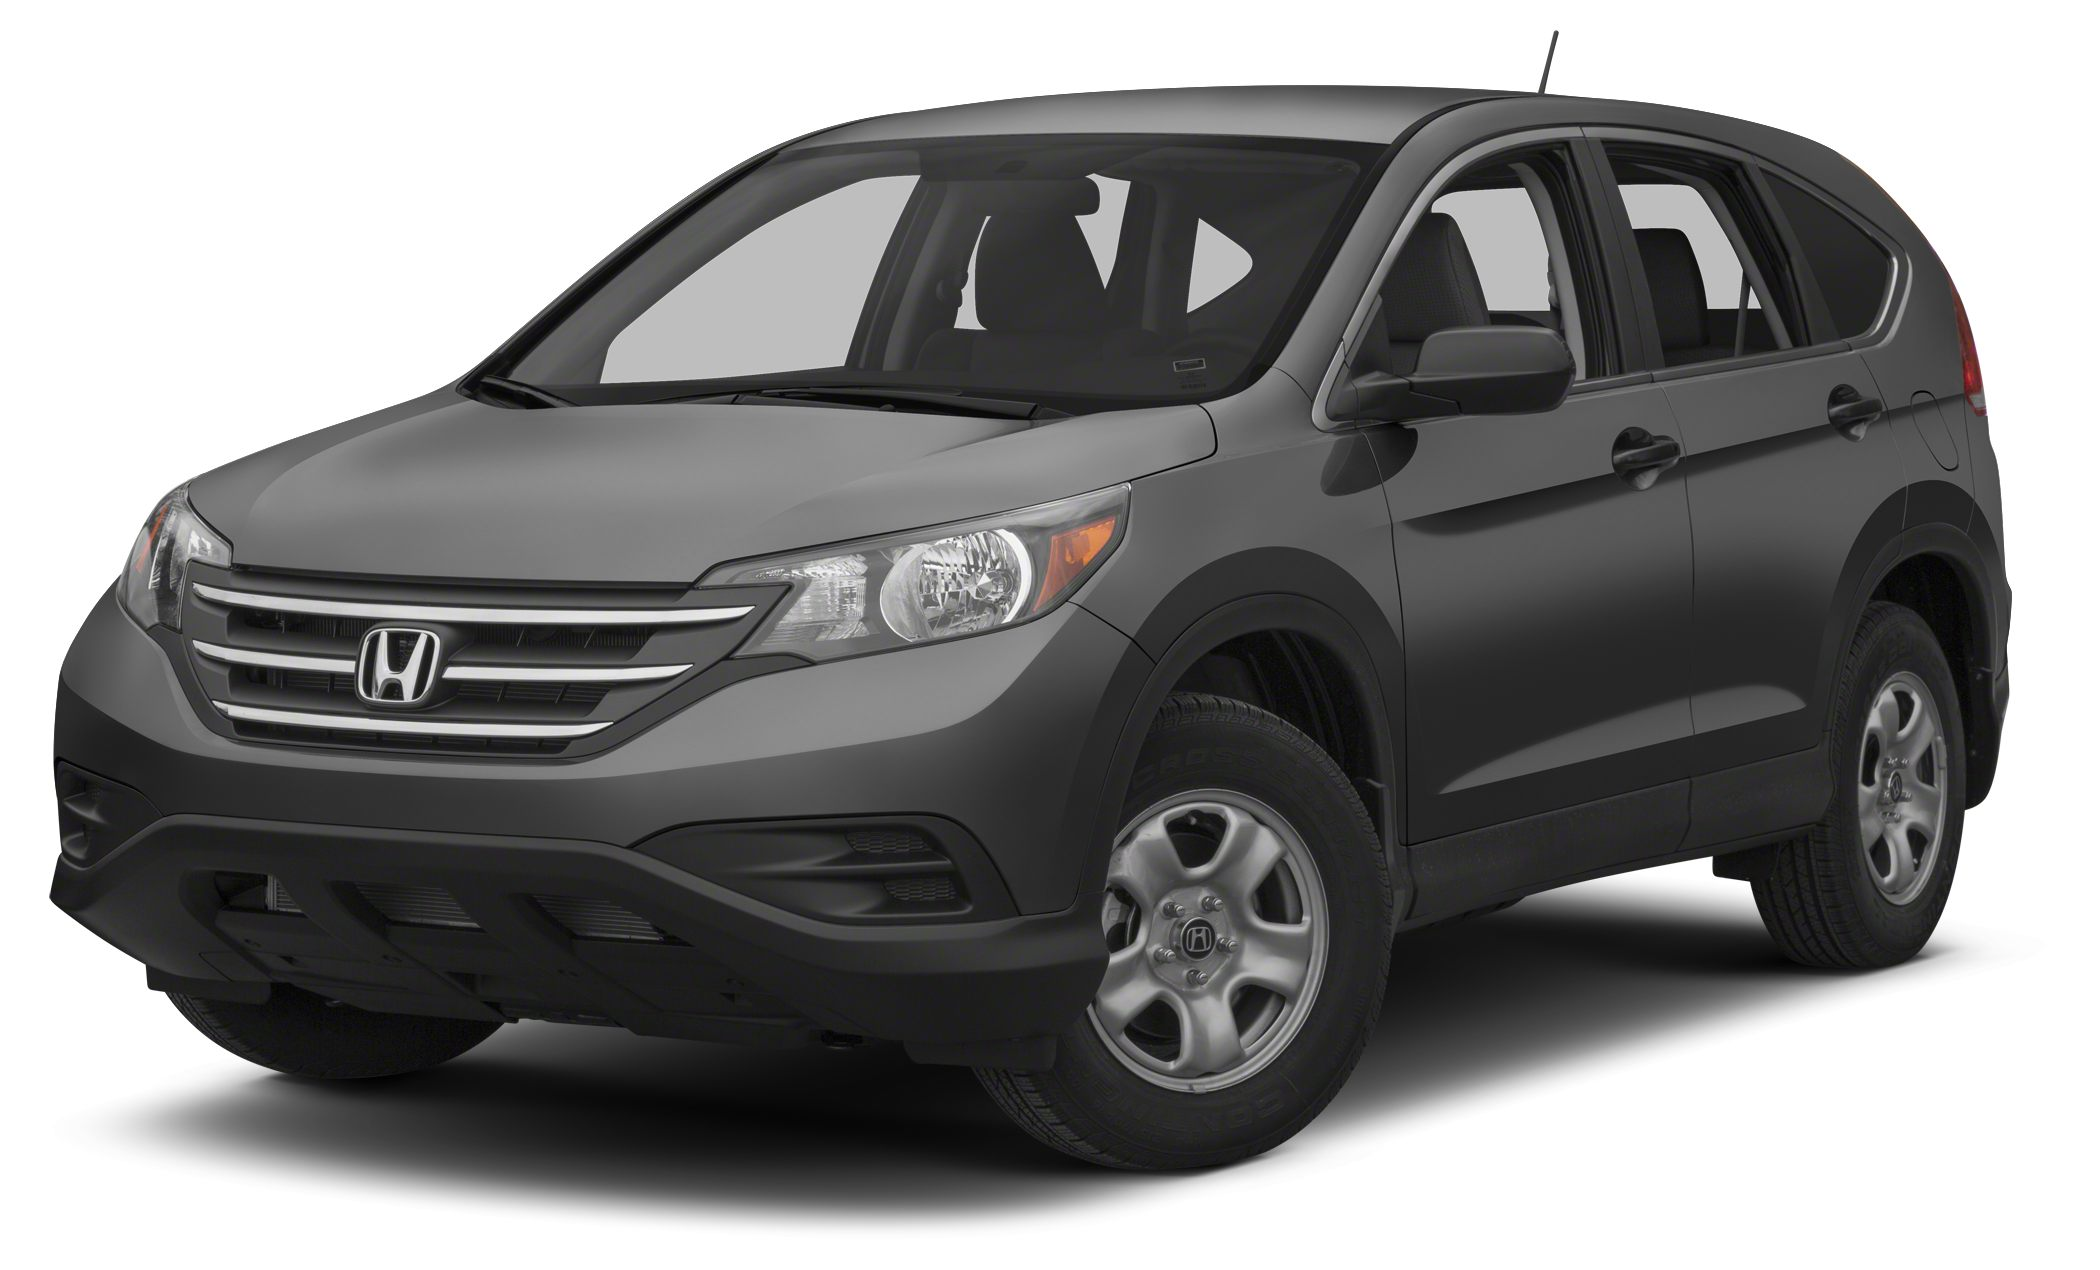 2013 Honda CR-V LX CARFAX 1-Owner Excellent Condition ONLY 11154 Miles PRICE DROP FROM 20800